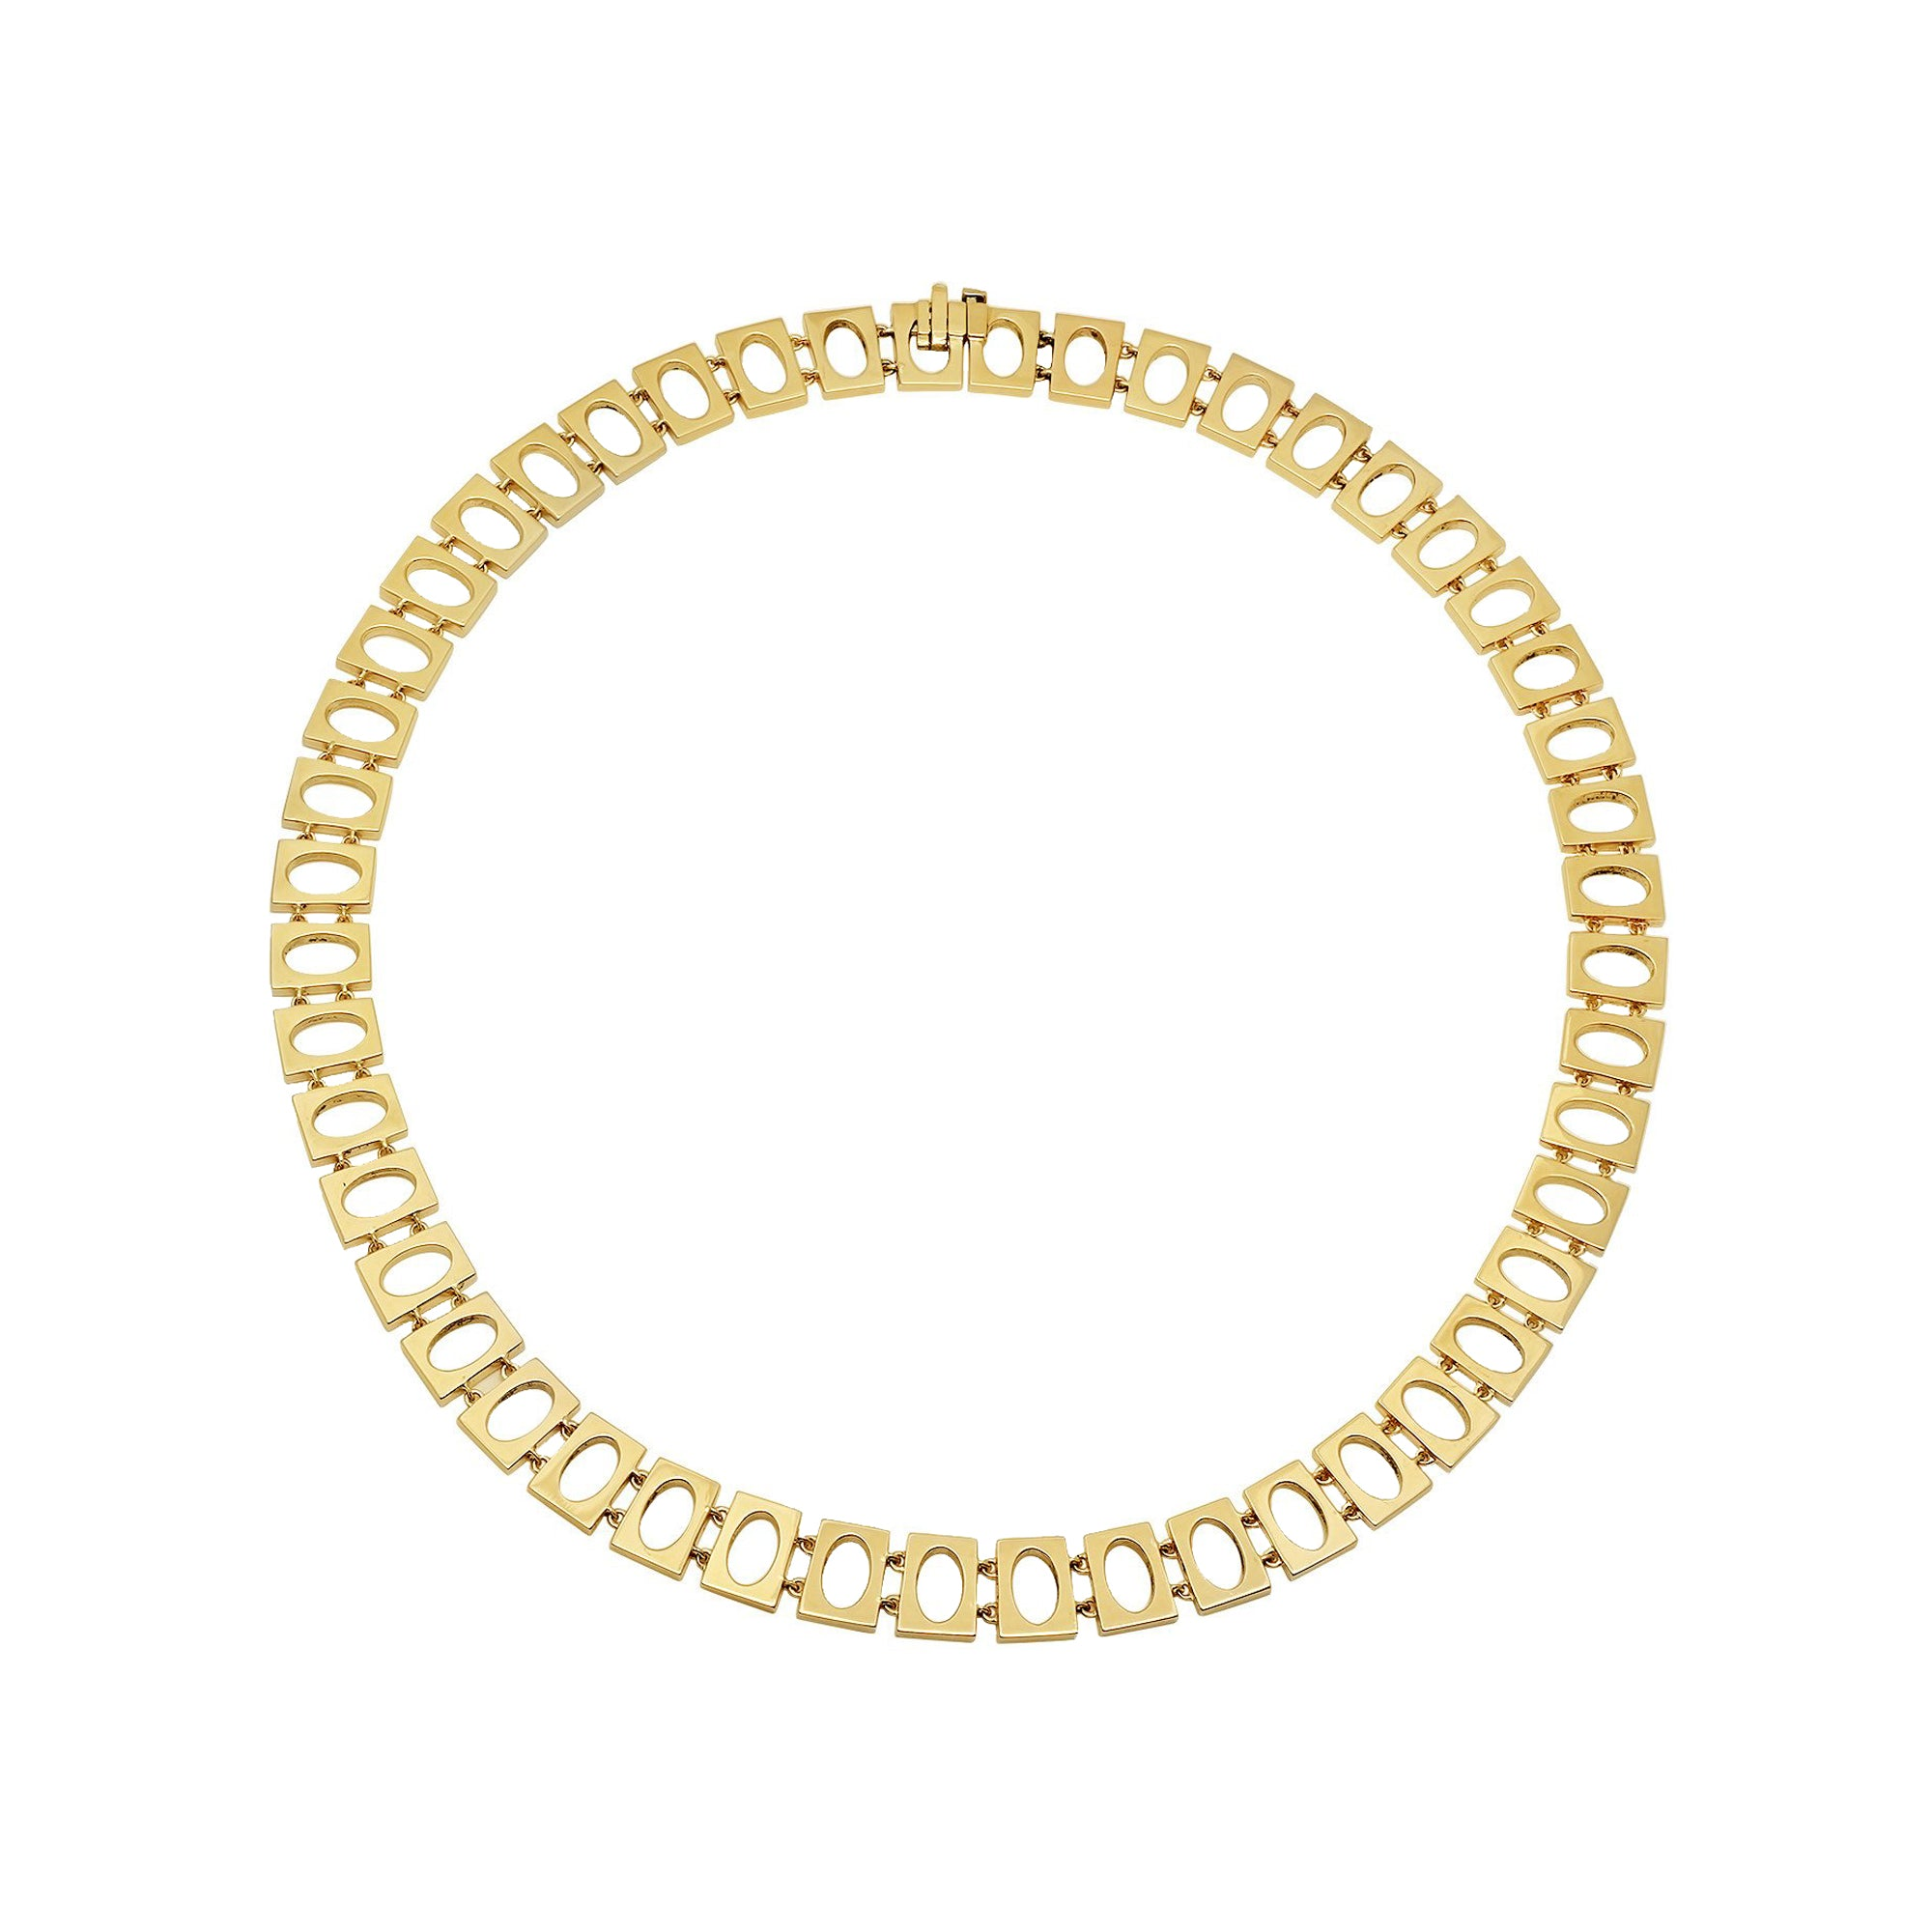 Established Jewelry Oval Link Collar Necklace - Gold - Necklaces - Broken English Jewelry